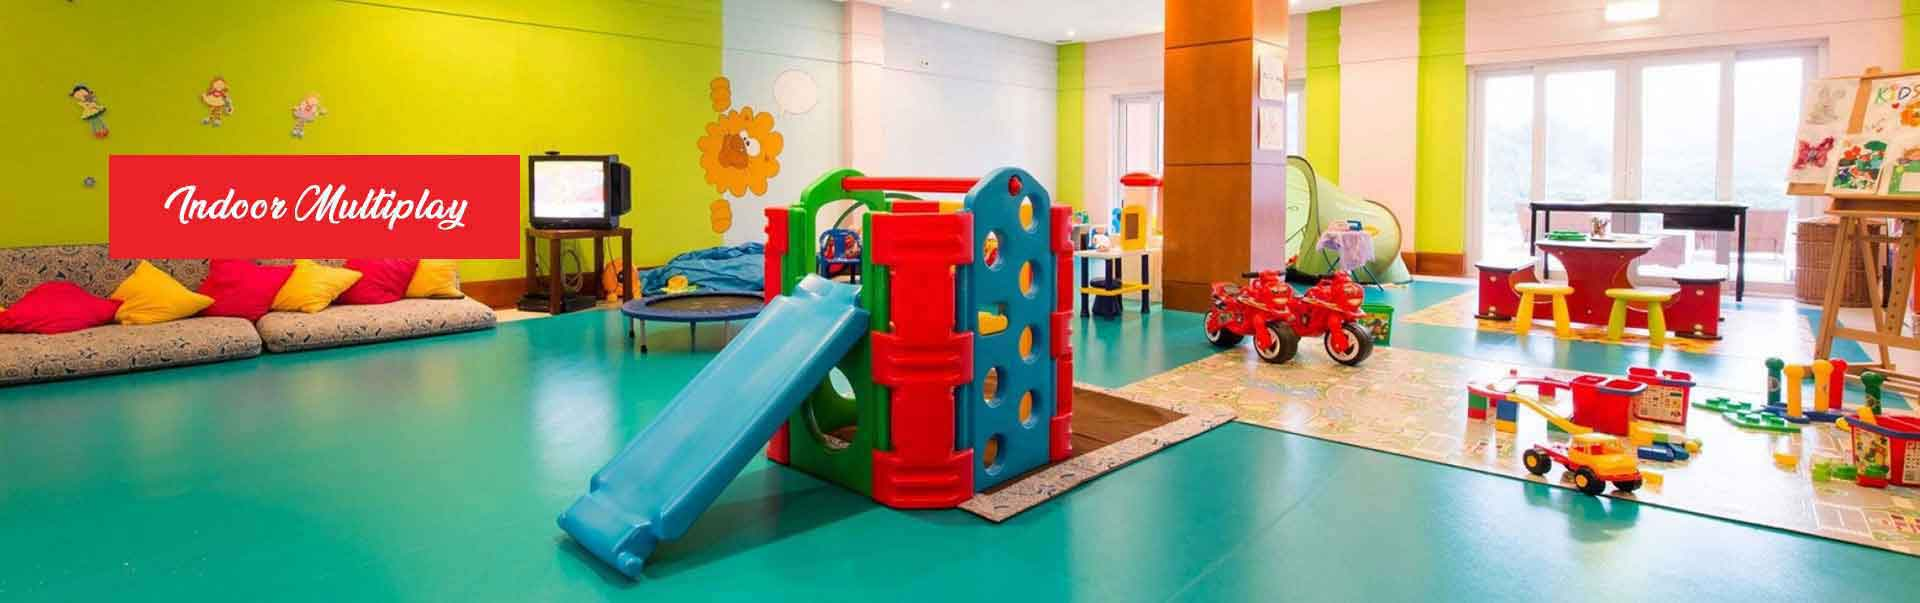 Indoor Multiplay